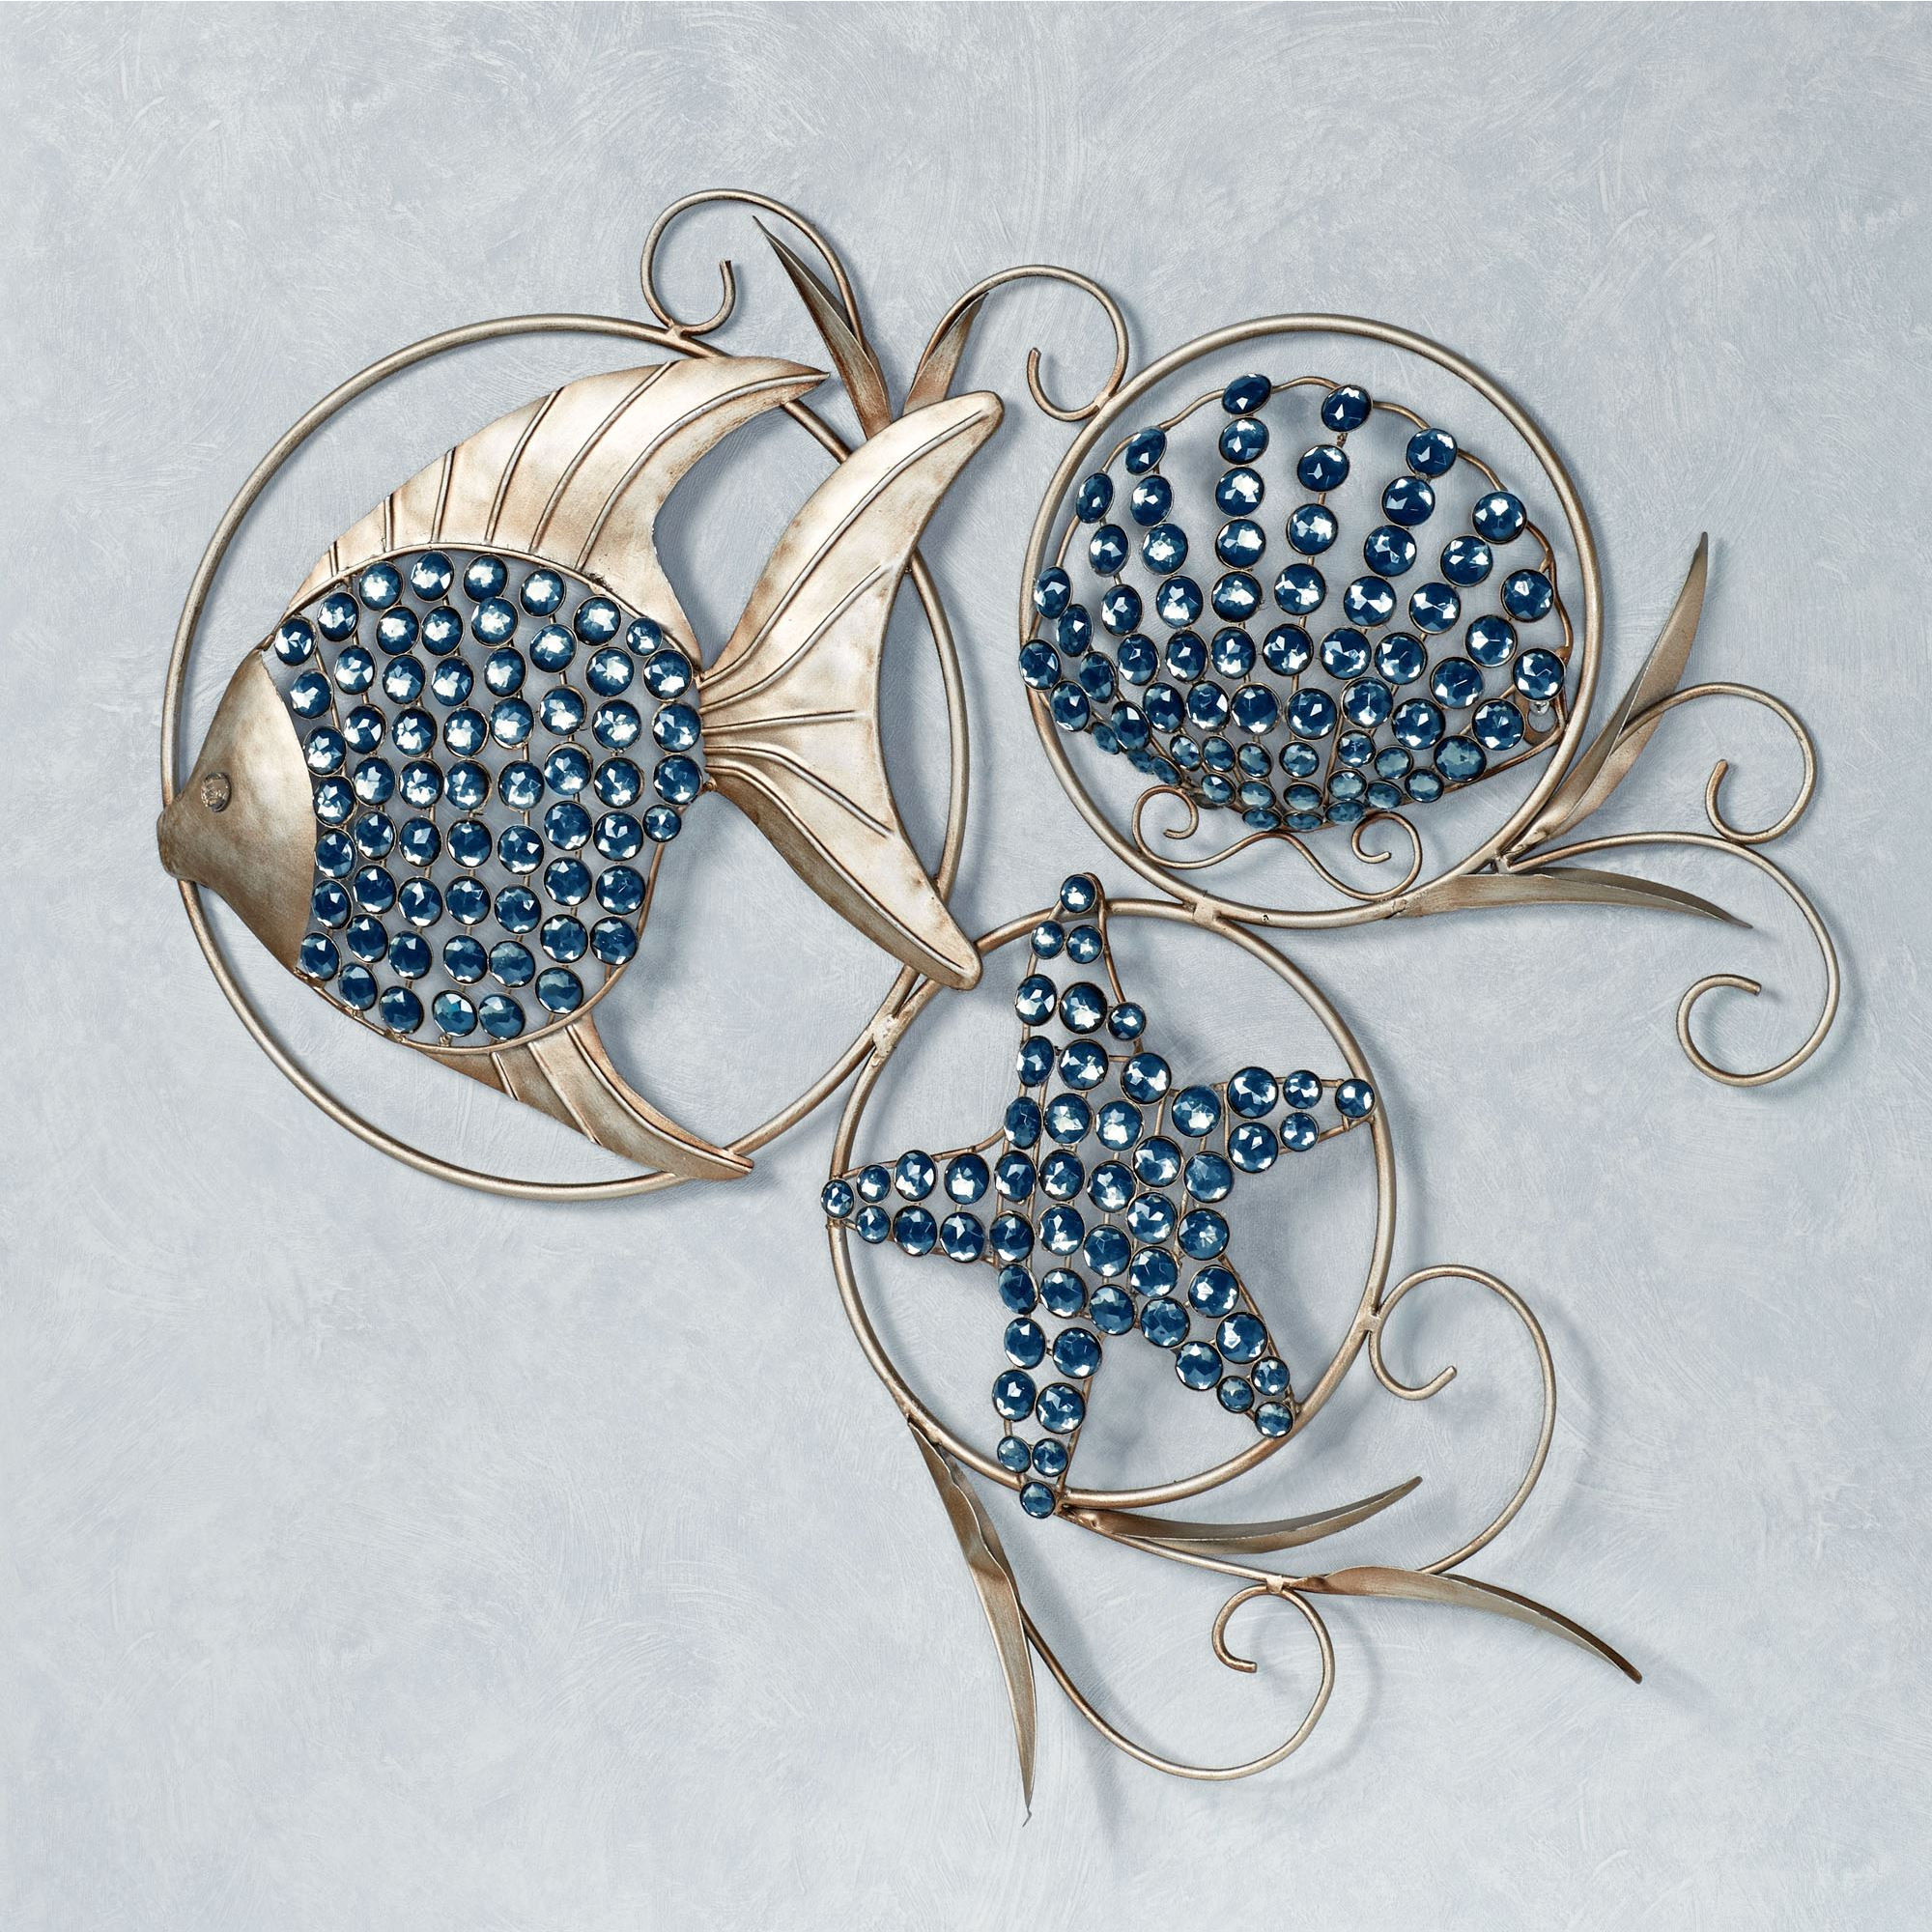 Tree Shell Leaves Sculpture Wall Decor Throughout Favorite Decoration Ornamental Wall Art Metal Artwork For Living Room Metal (Gallery 16 of 20)